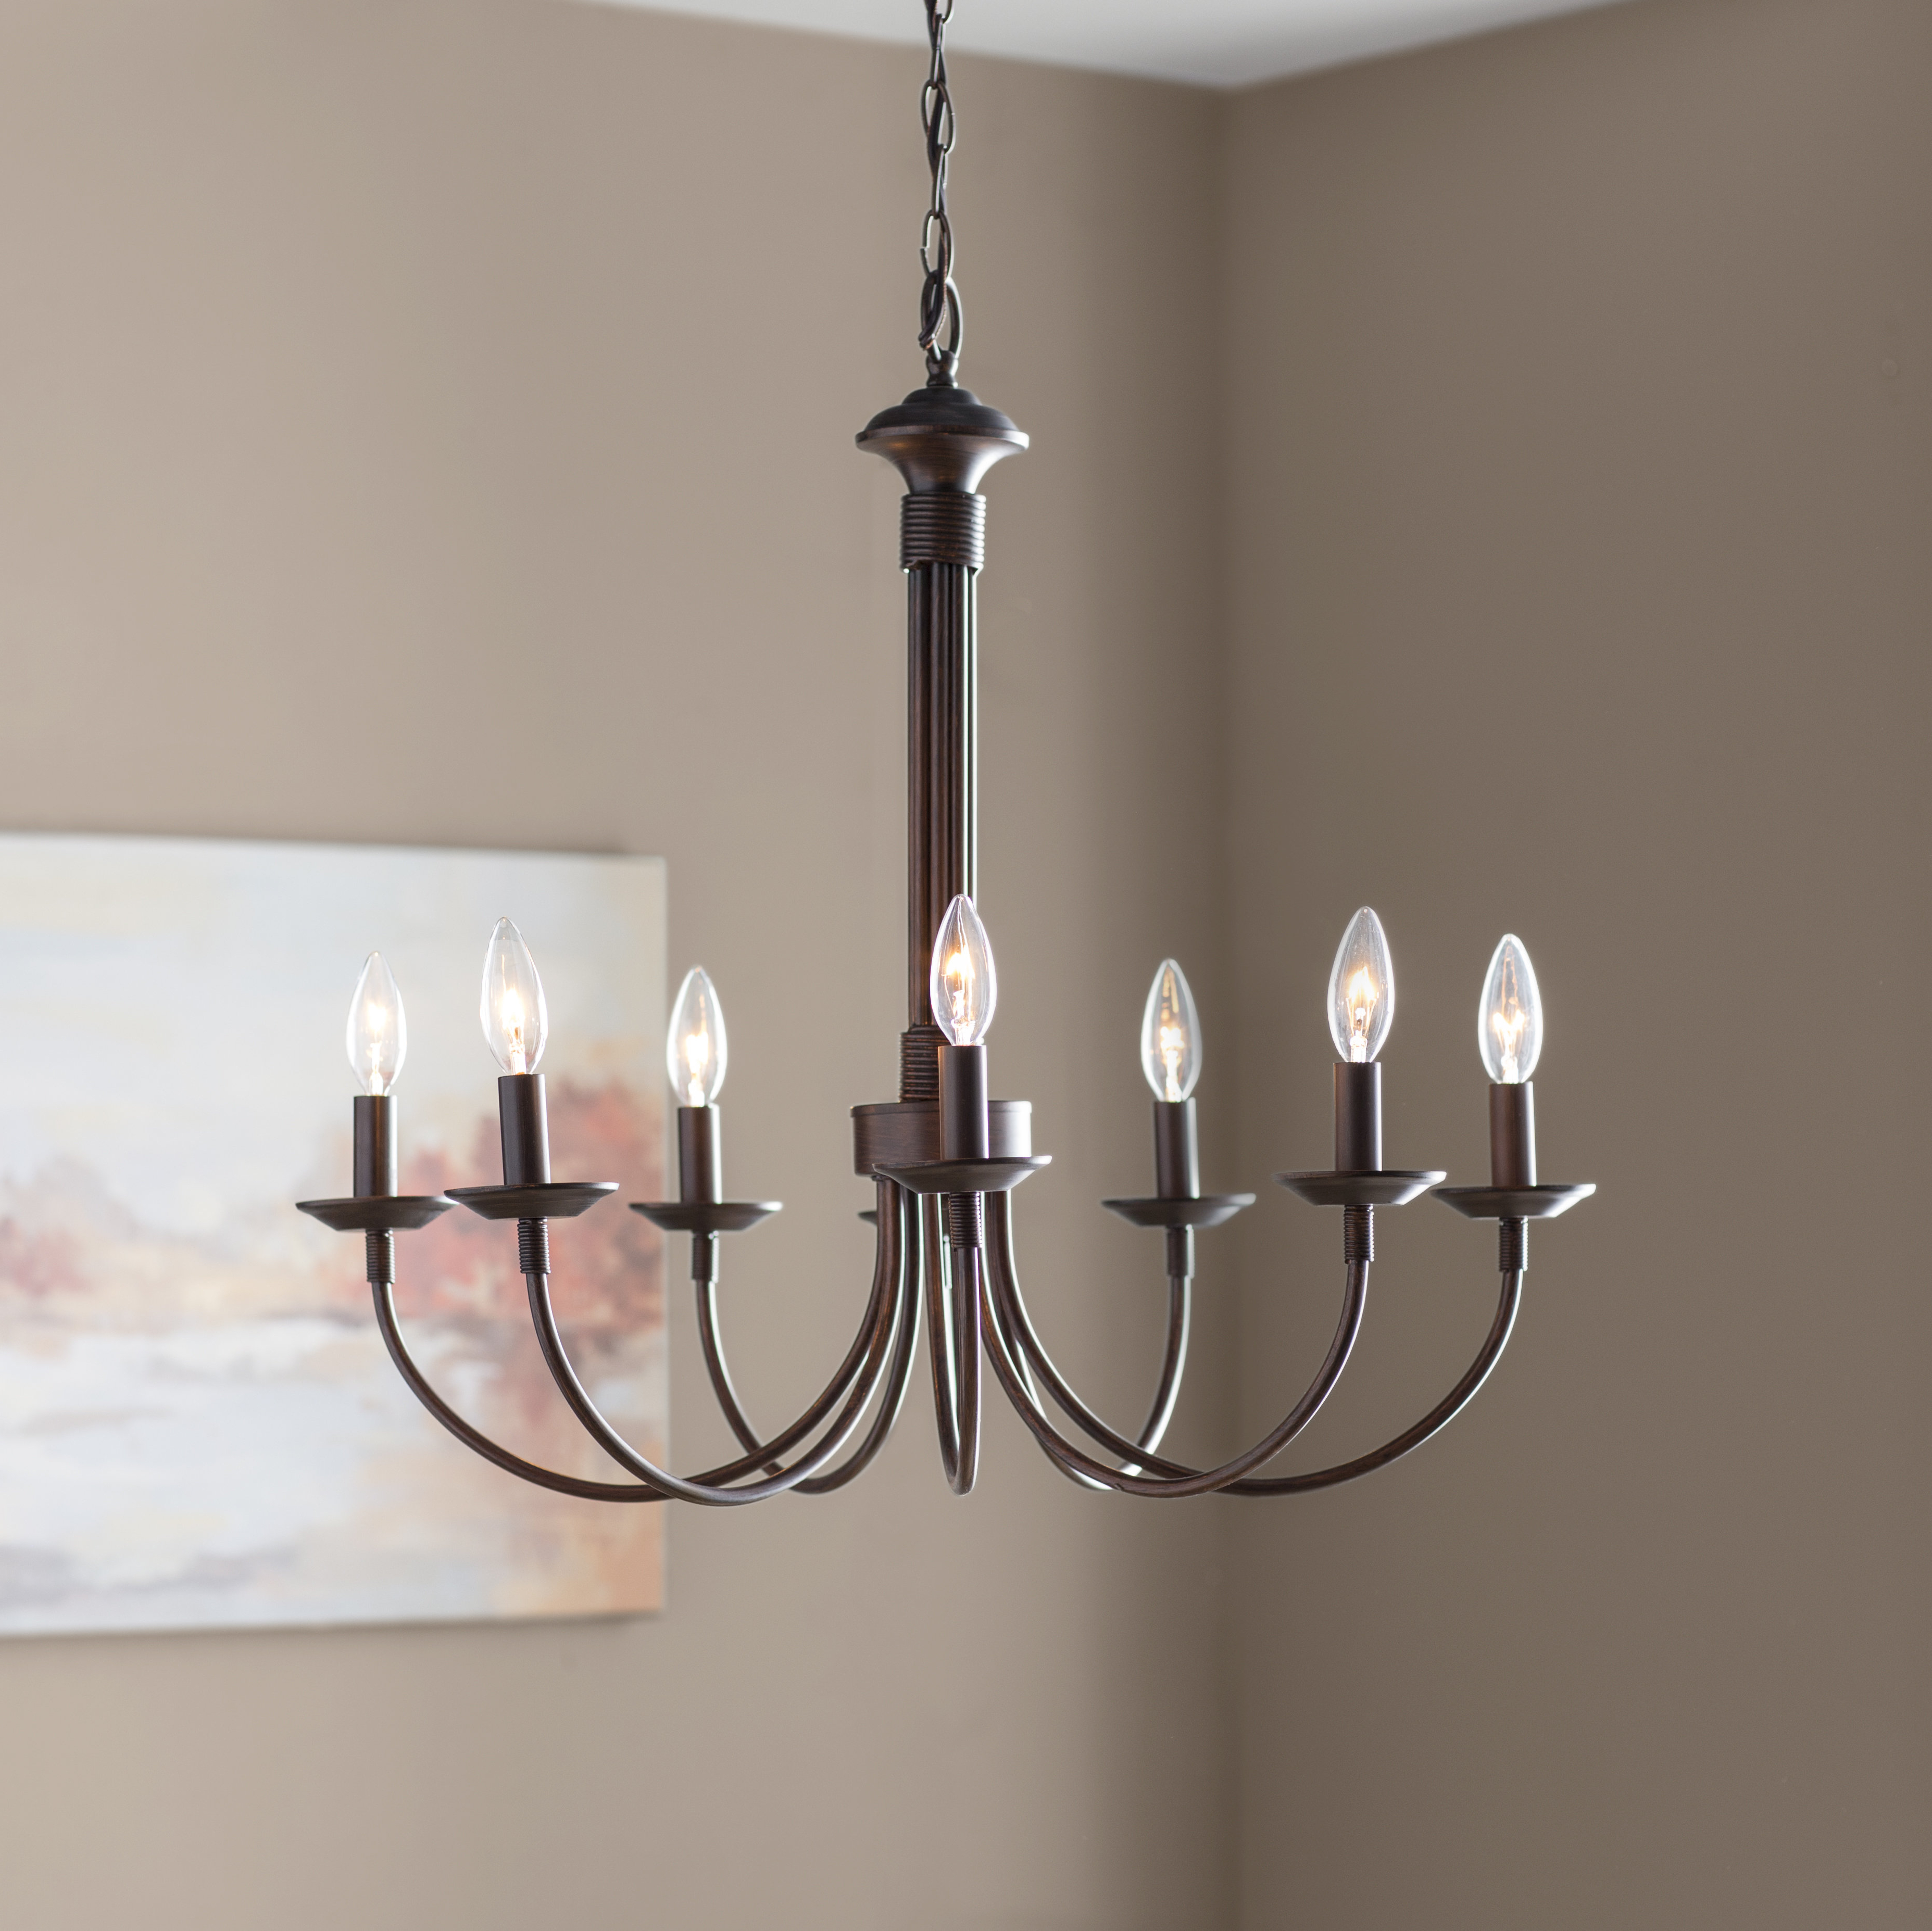 Laurel Foundry Modern Farmhouse Shaylee 8 Light Candle Style Chandelier Within 2019 Kenedy 9 Light Candle Style Chandeliers (View 14 of 25)